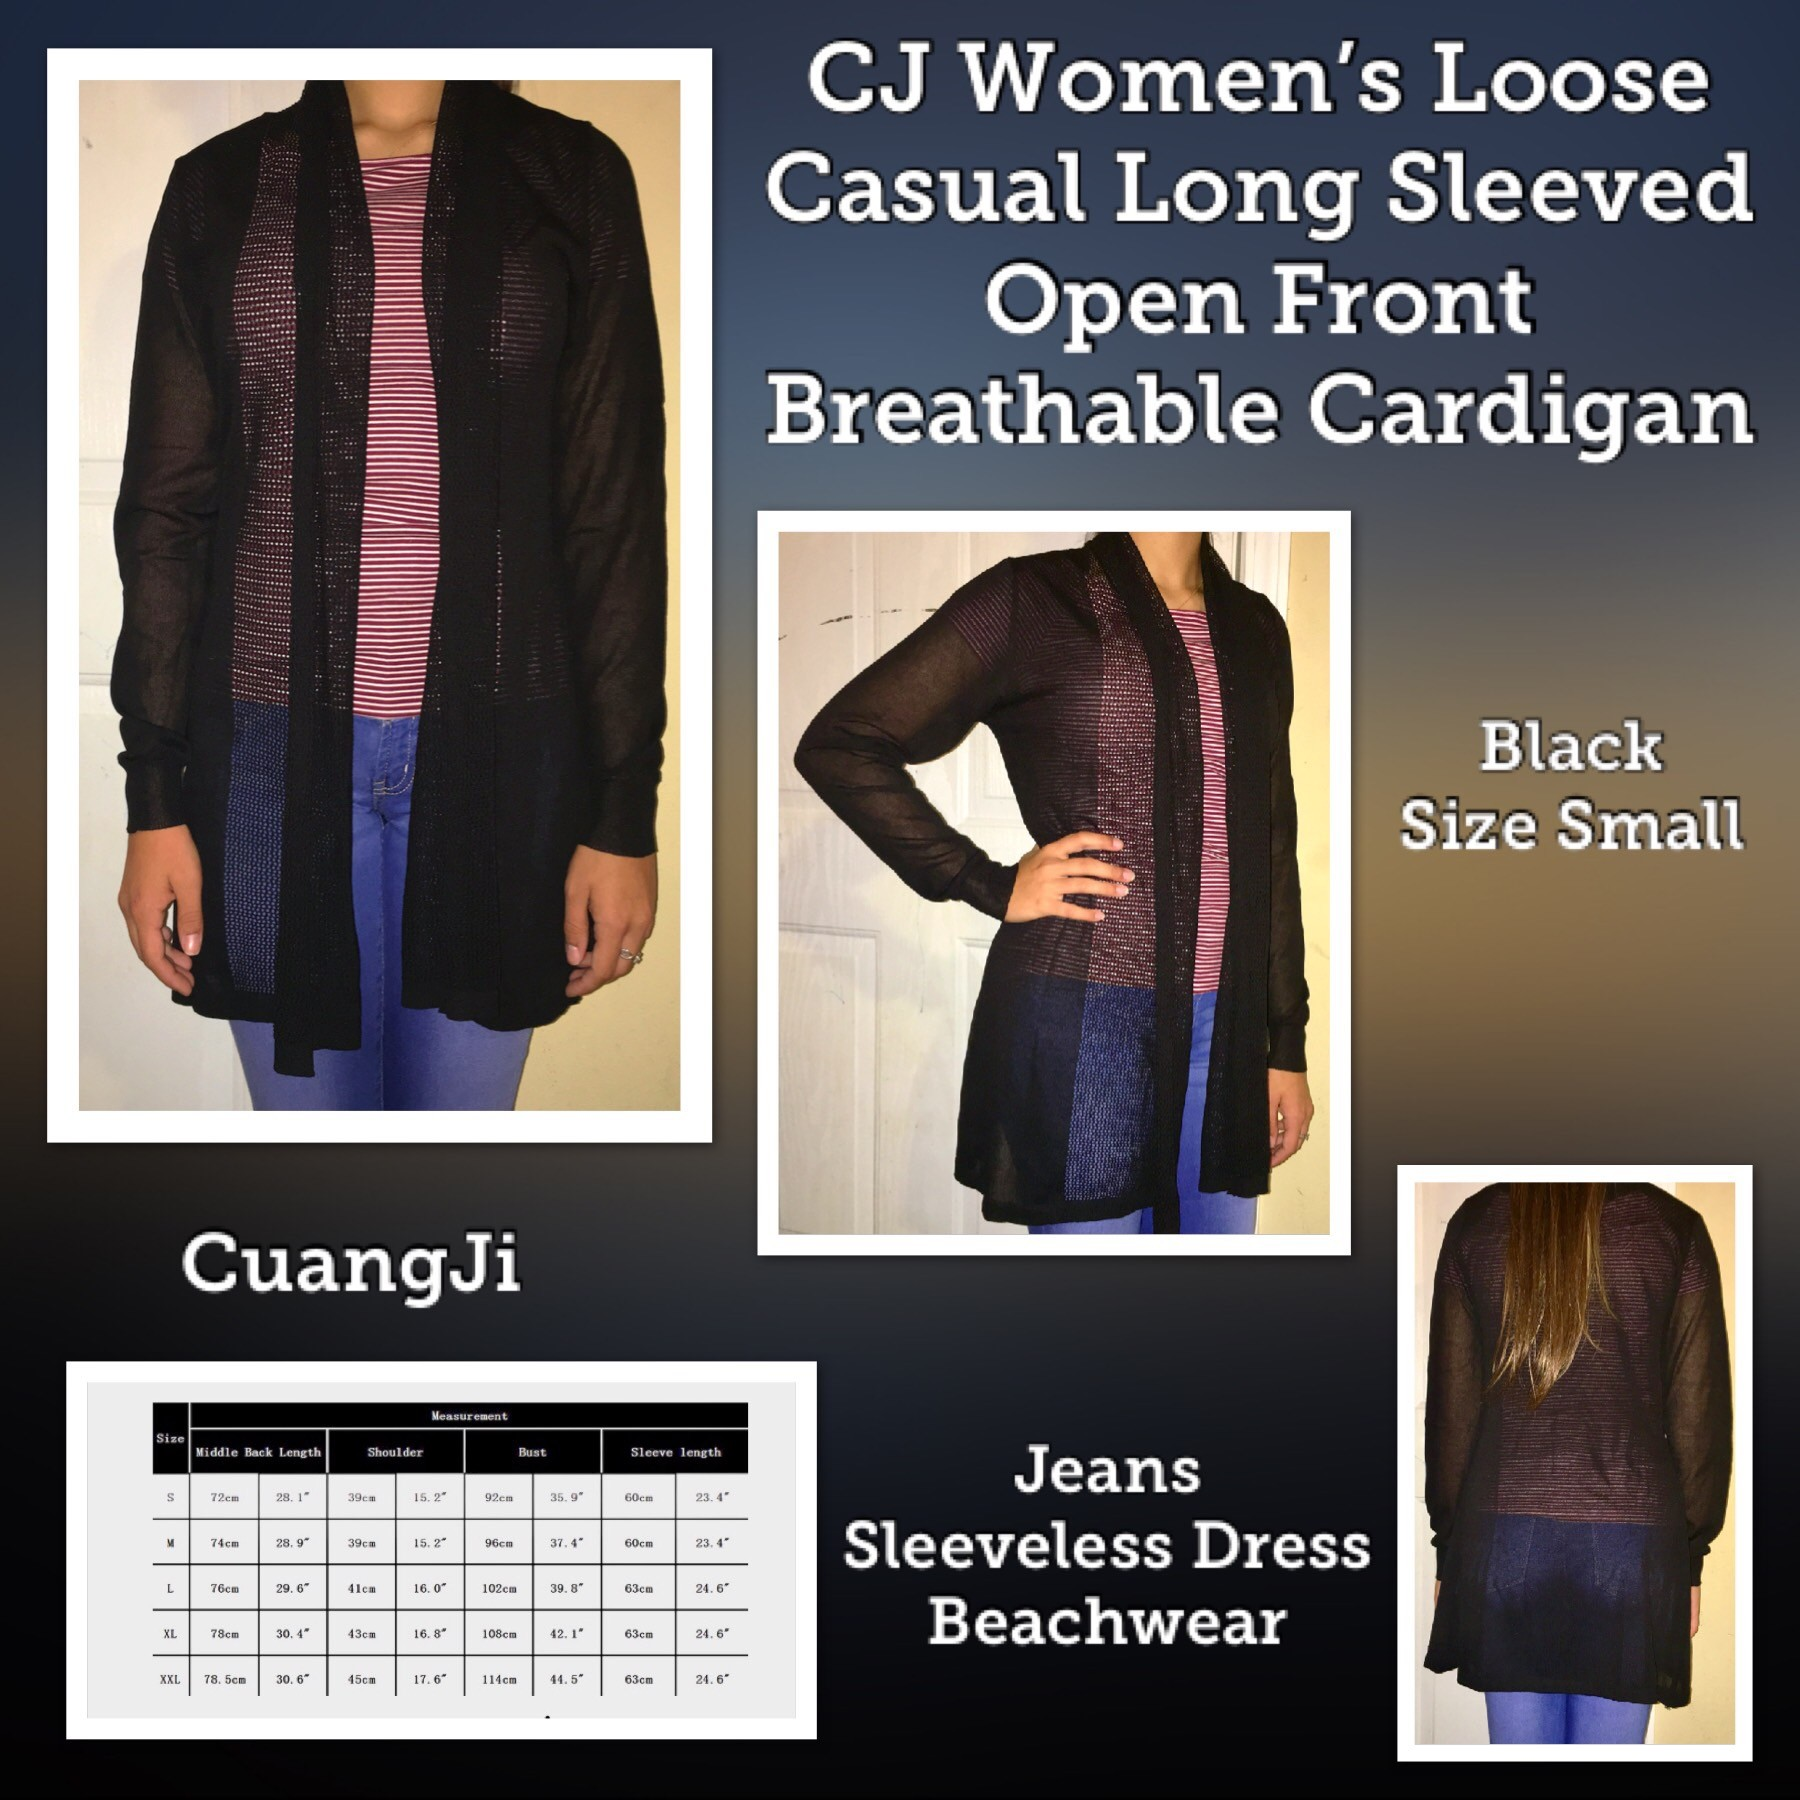 CJ Women's Loose Casual Long Sleeved Open Front Breathable Cardigan - (Black) Size Small